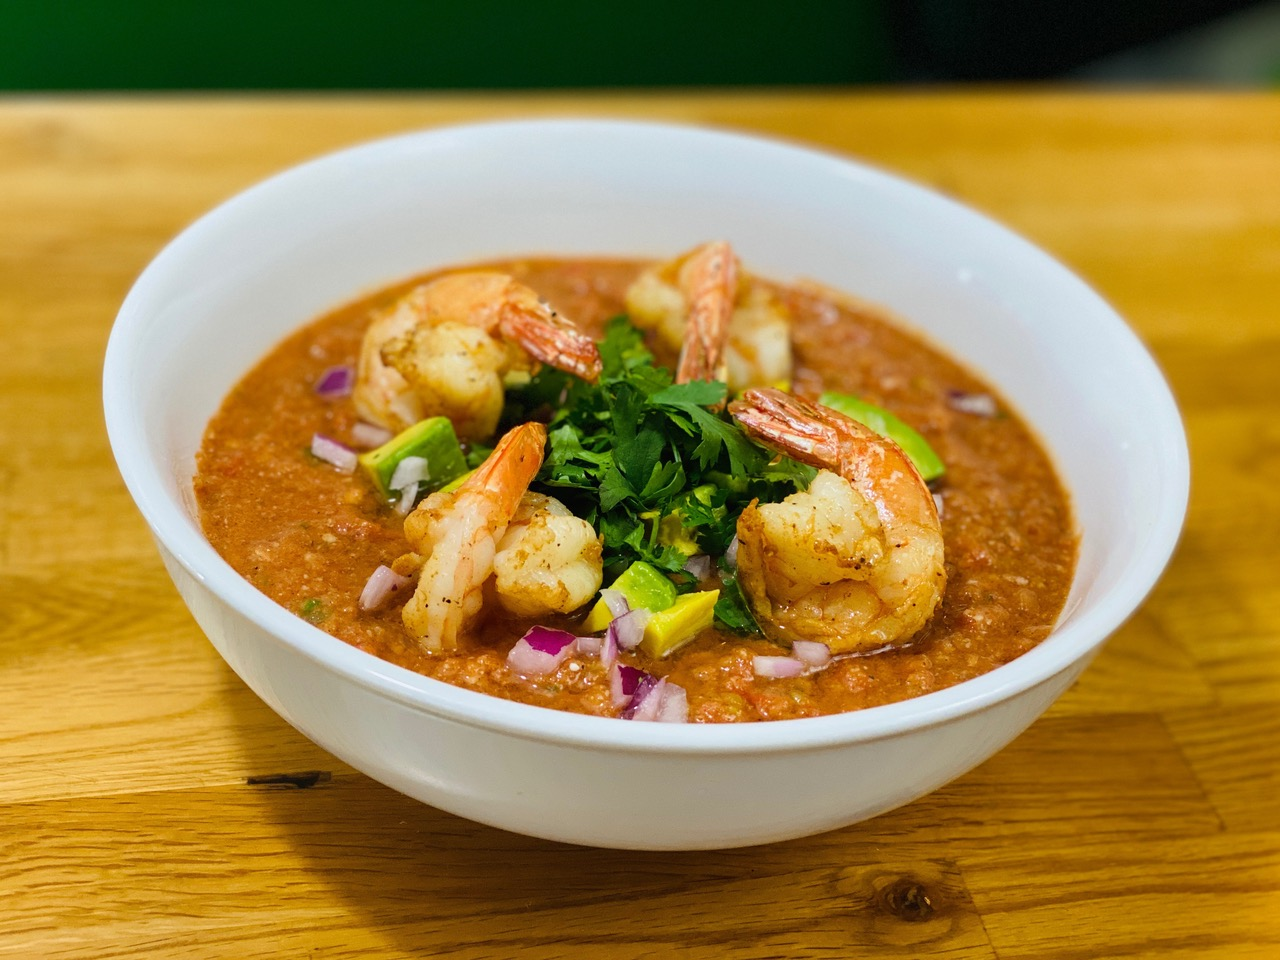 https://www.phoenixmag.com/wp-content/uploads/2020/08/PJ-Gazpacho-with-Shrimp.jpeg